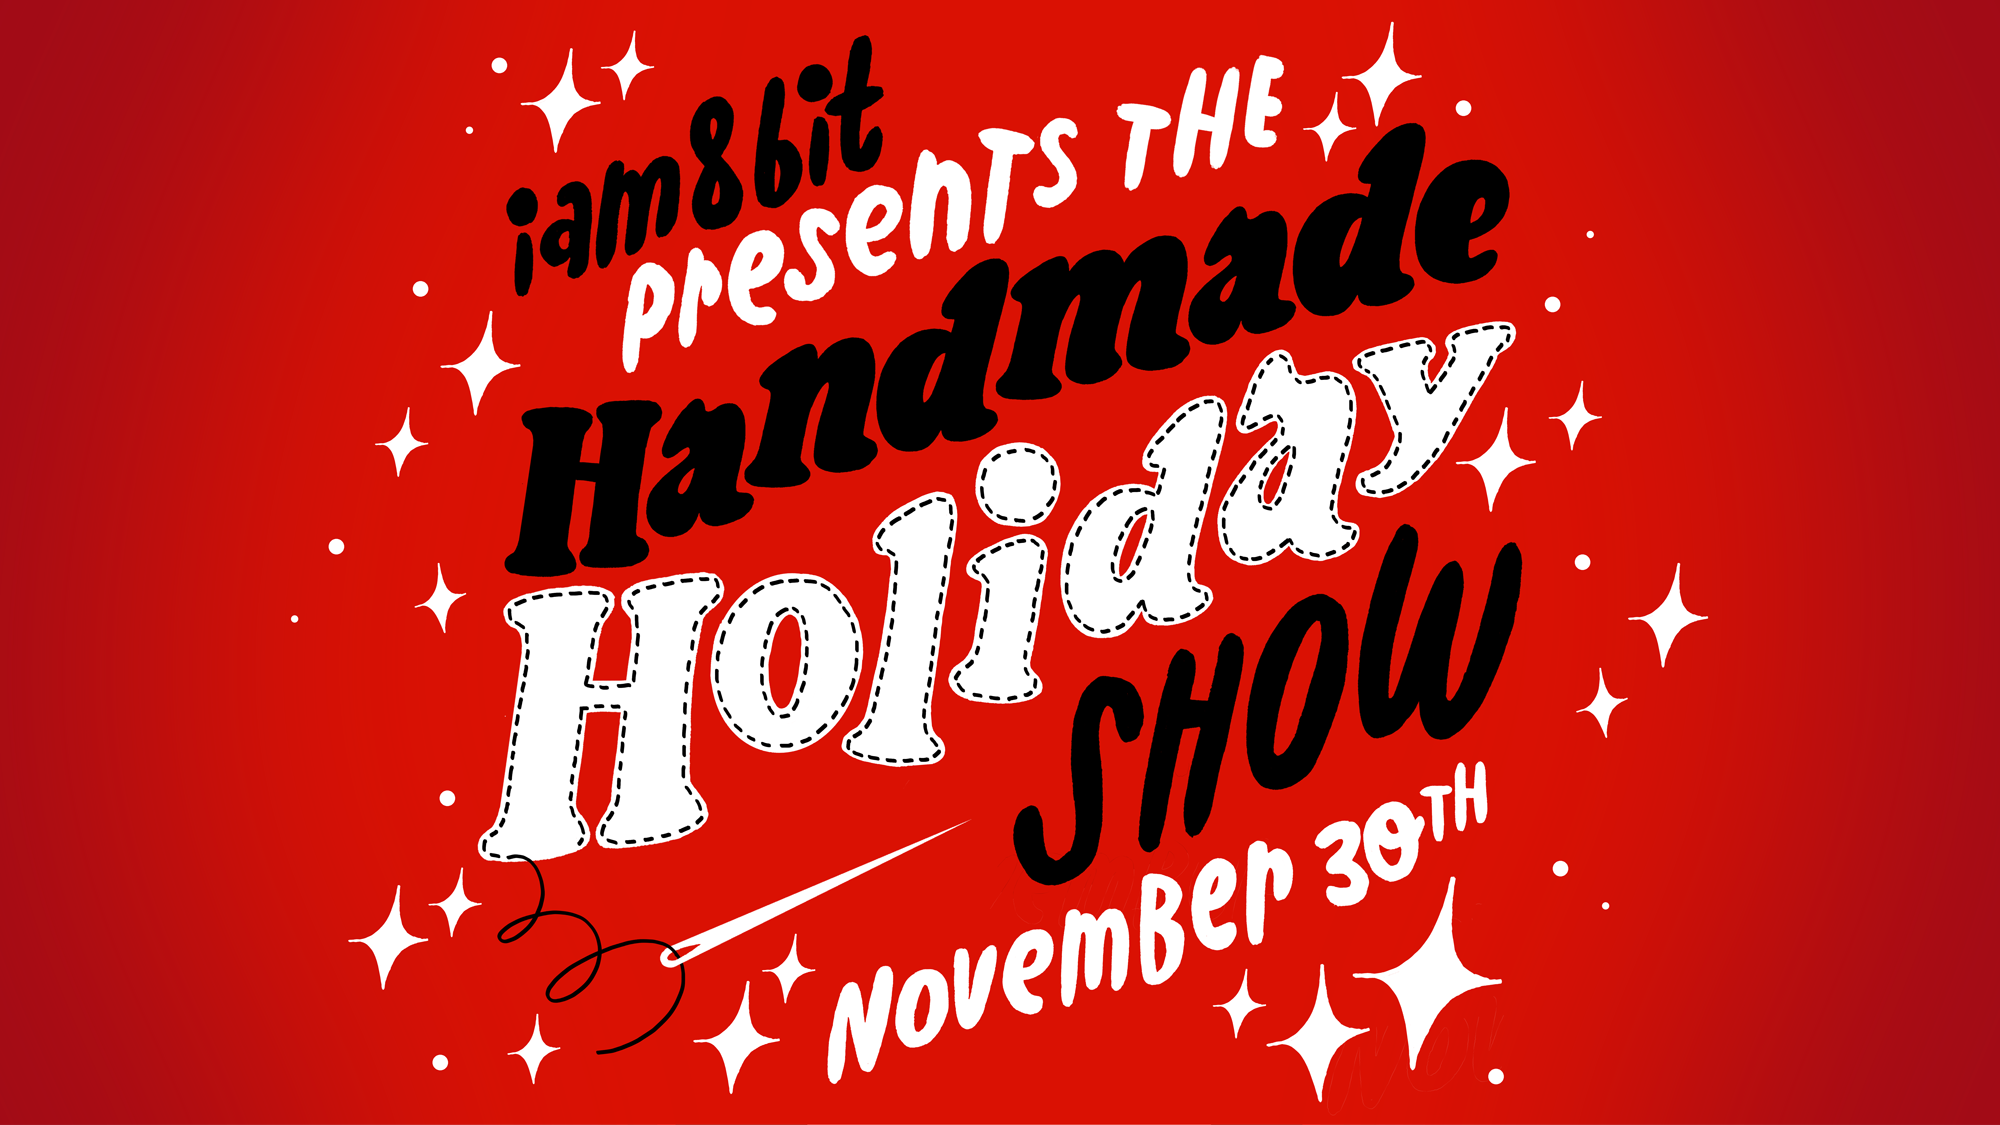 iam8bit – The Handmade Holiday Show – Calling All Californians!